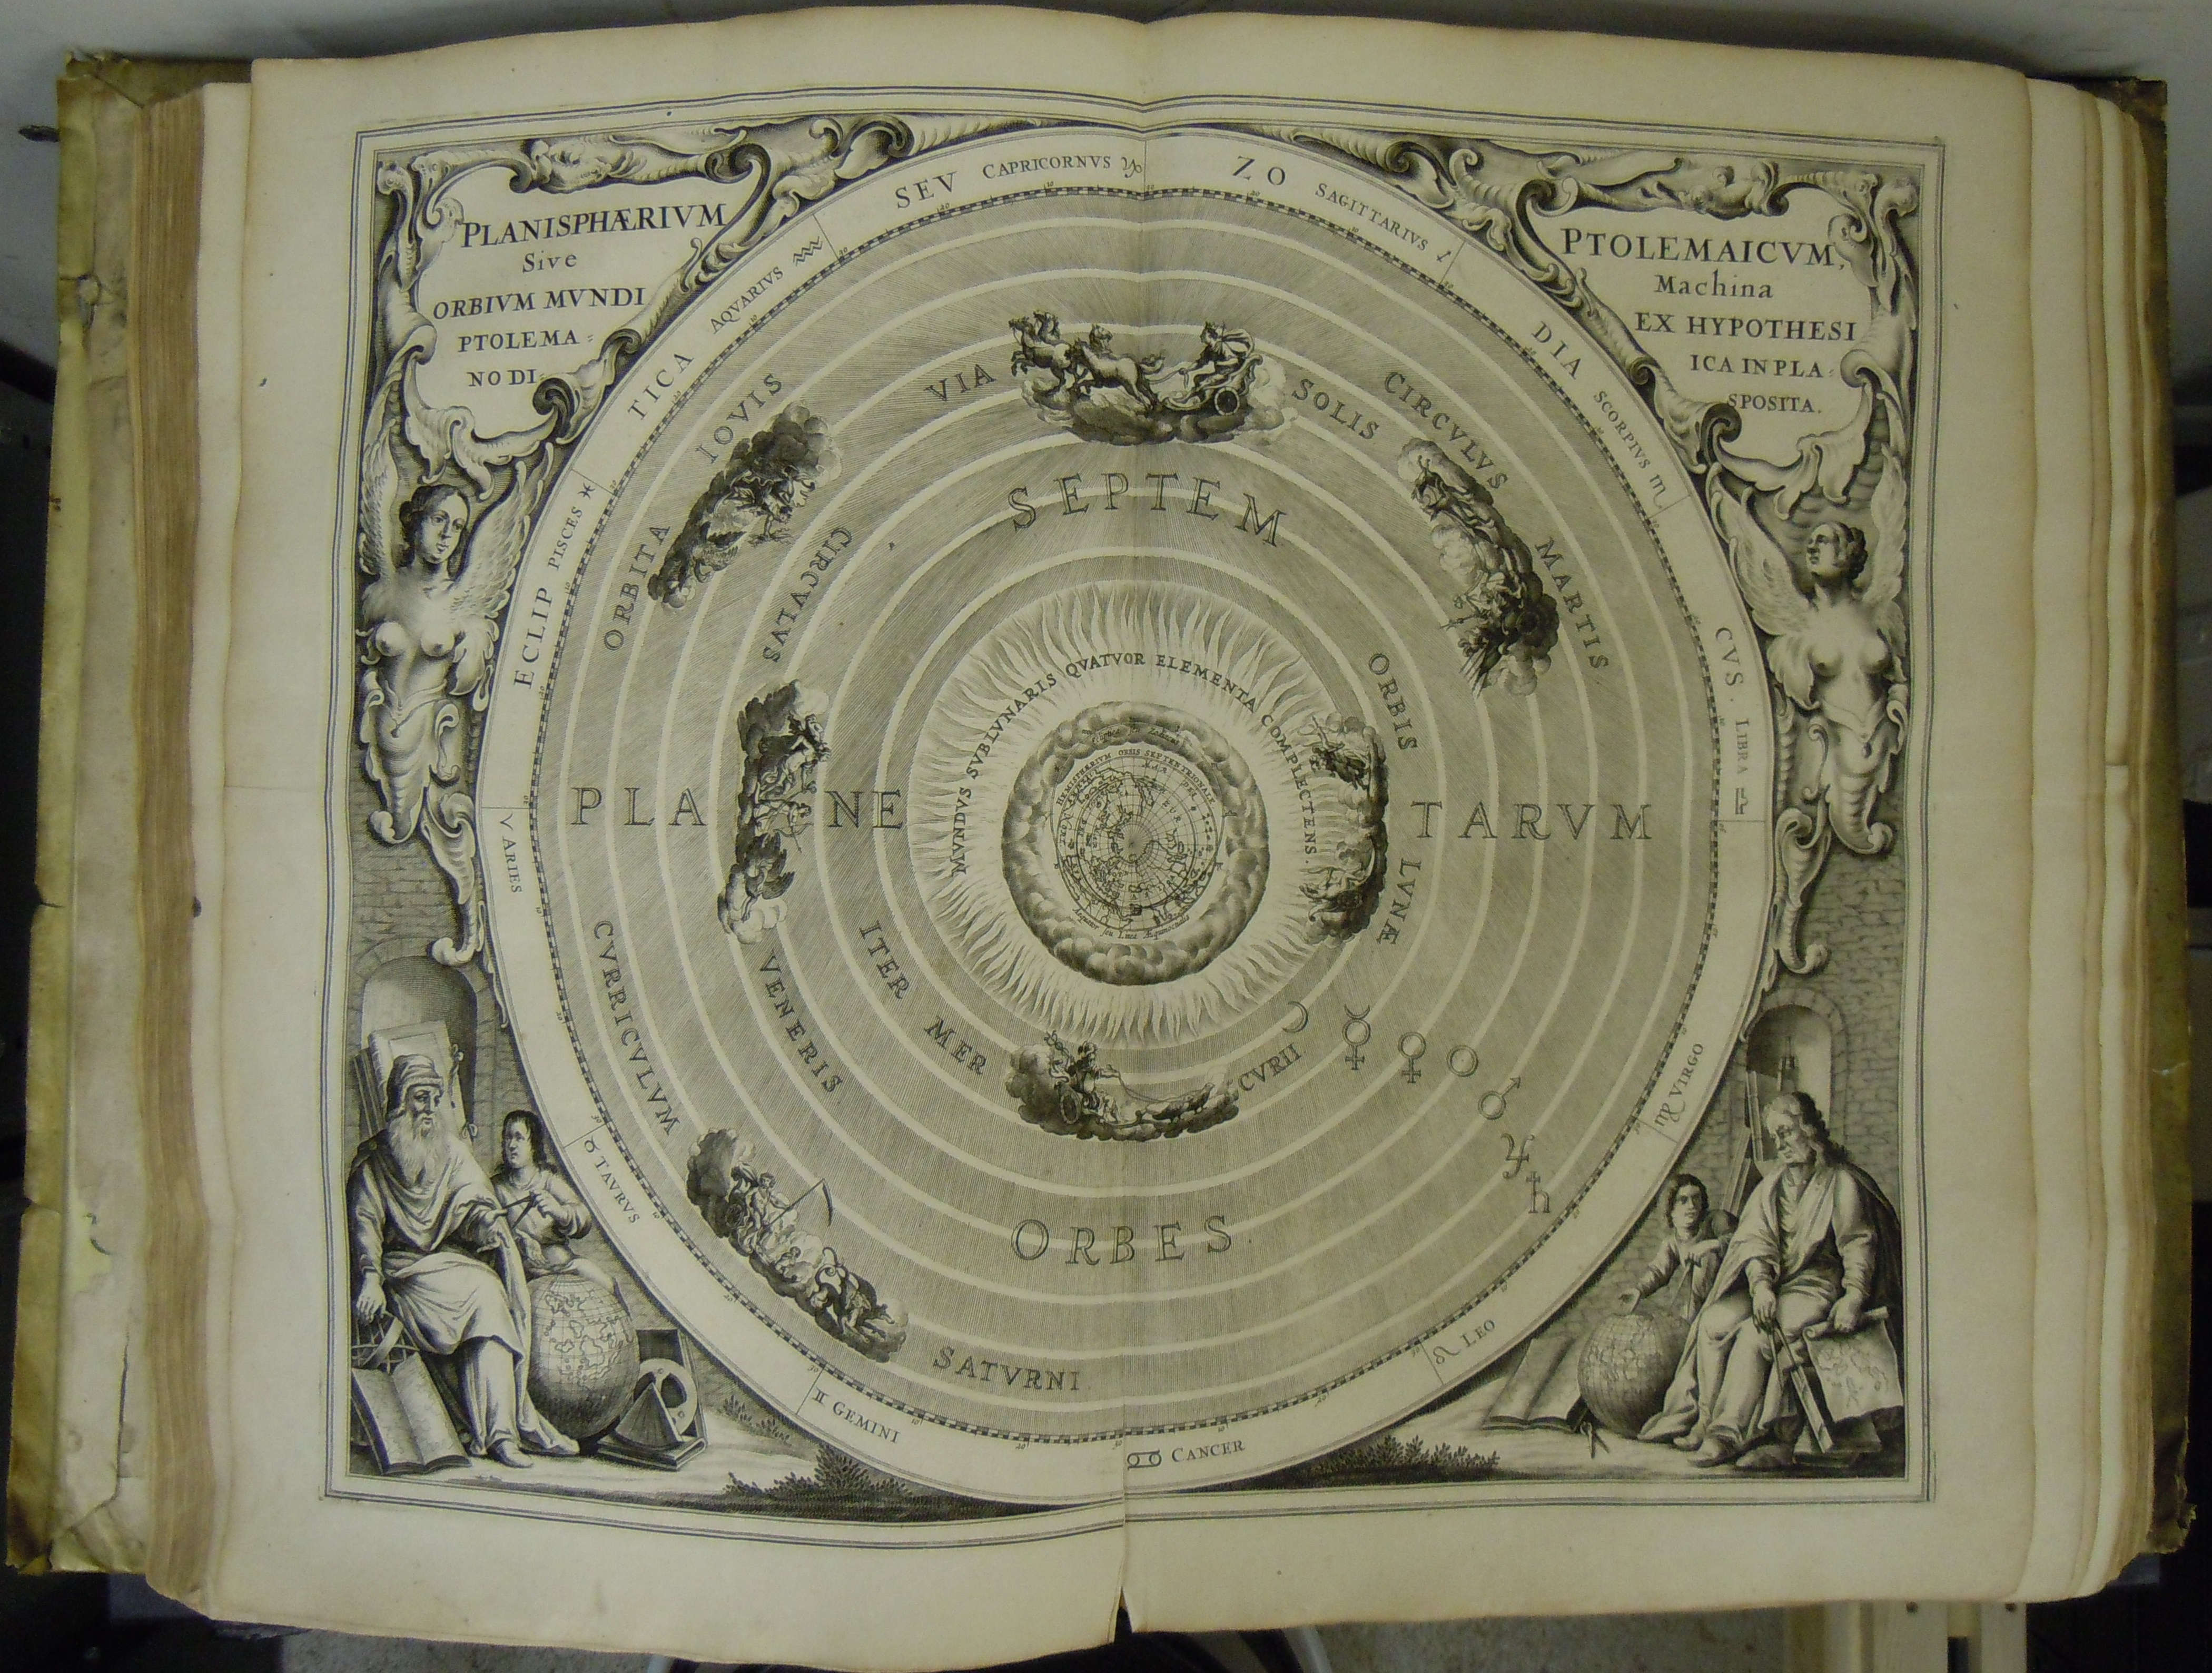 BT1.32.8, between p.8-9 of second sequence, Andreas Celarius' Harmonia macrocosmica, 1560